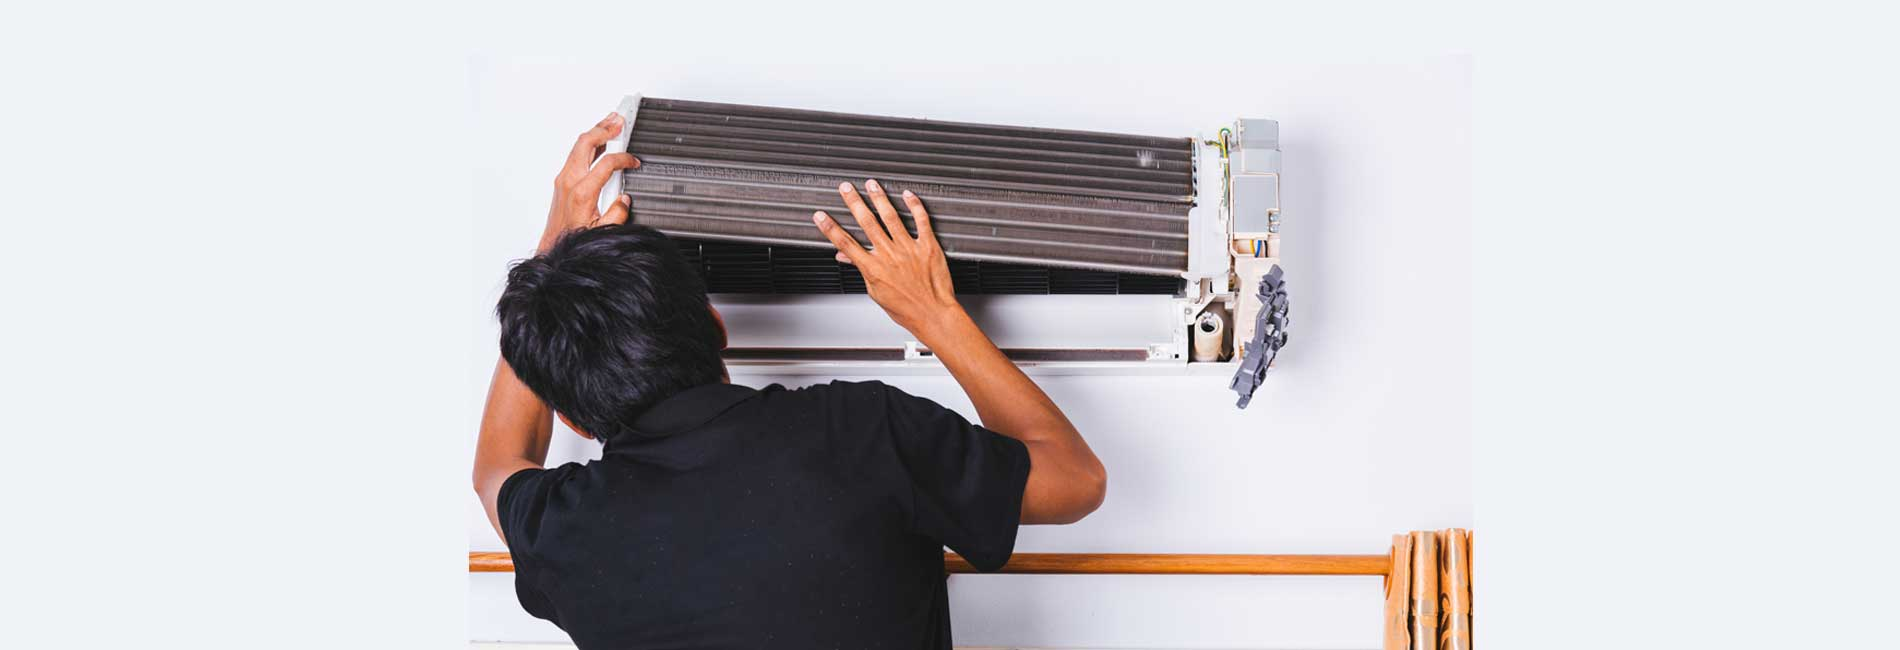 Air Condition Repair in Kovilancheri